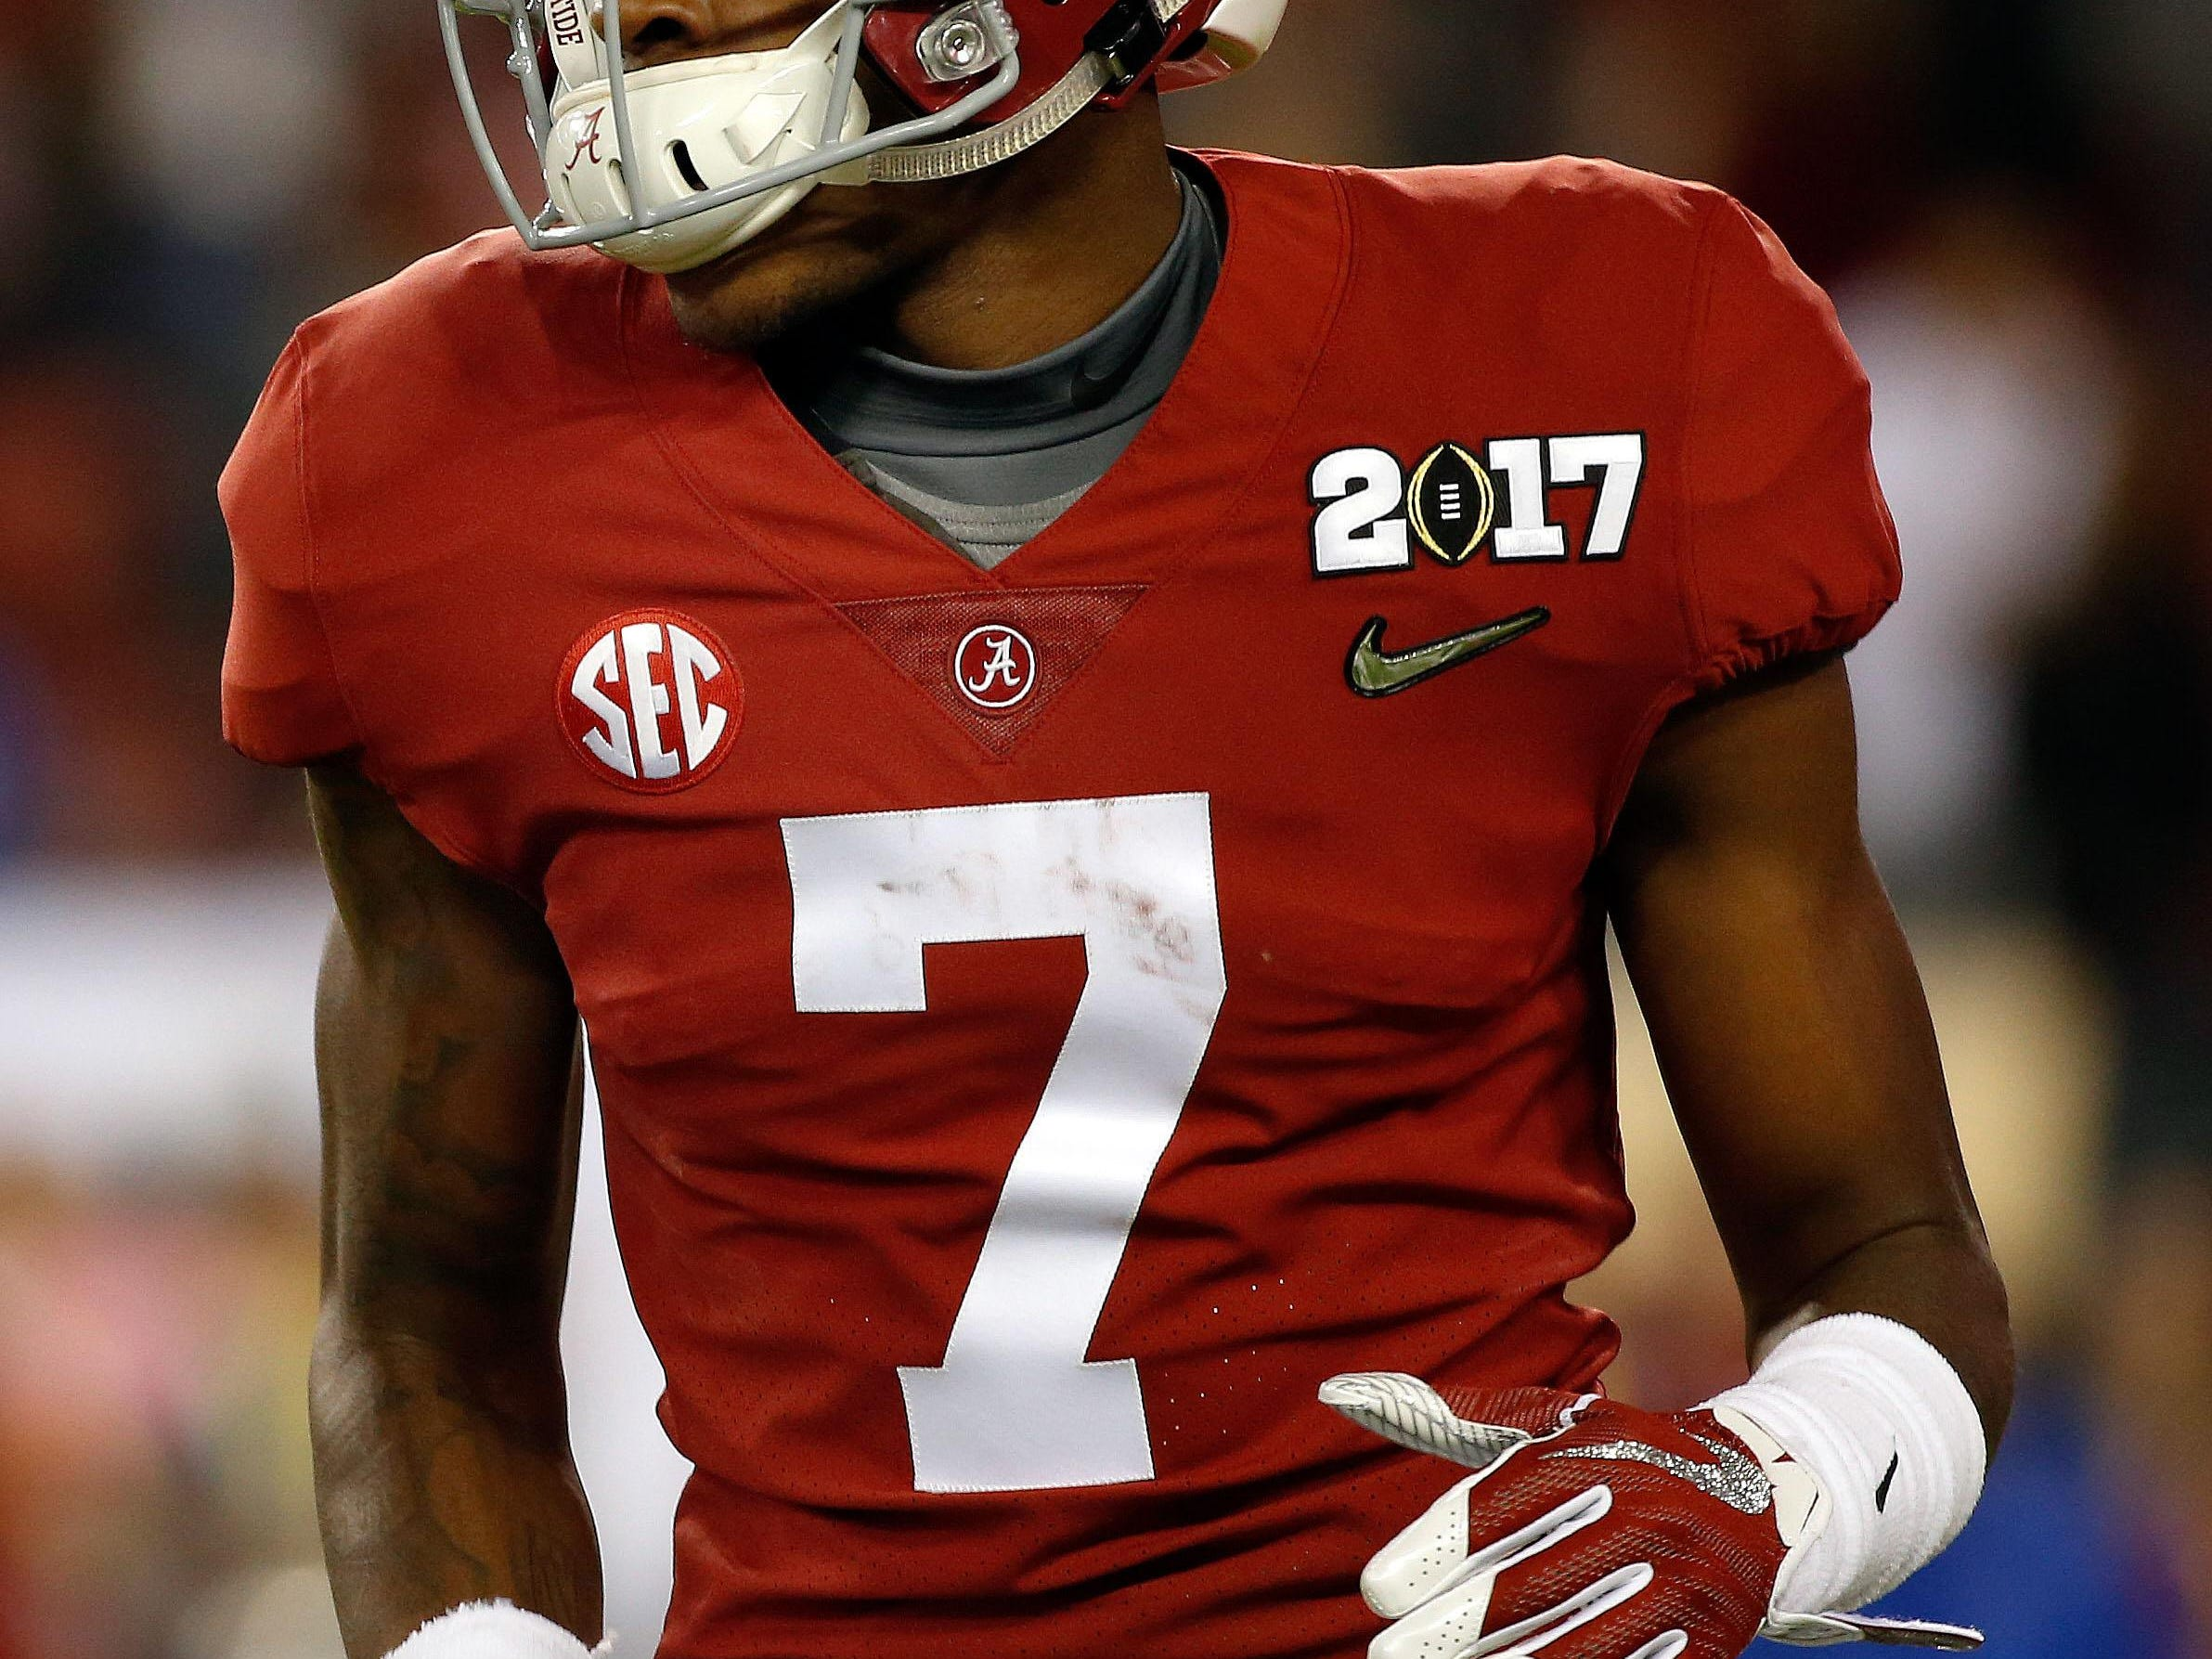 Jan 9, 2017; Tampa, FL, USA; Alabama Crimson Tide wide receiver Trevon Diggs (7) works out prior to the 2017 College Football Playoff National Championship Game at Raymond James Stadium. Mandatory Credit: Kim Klement-USA TODAY Sports